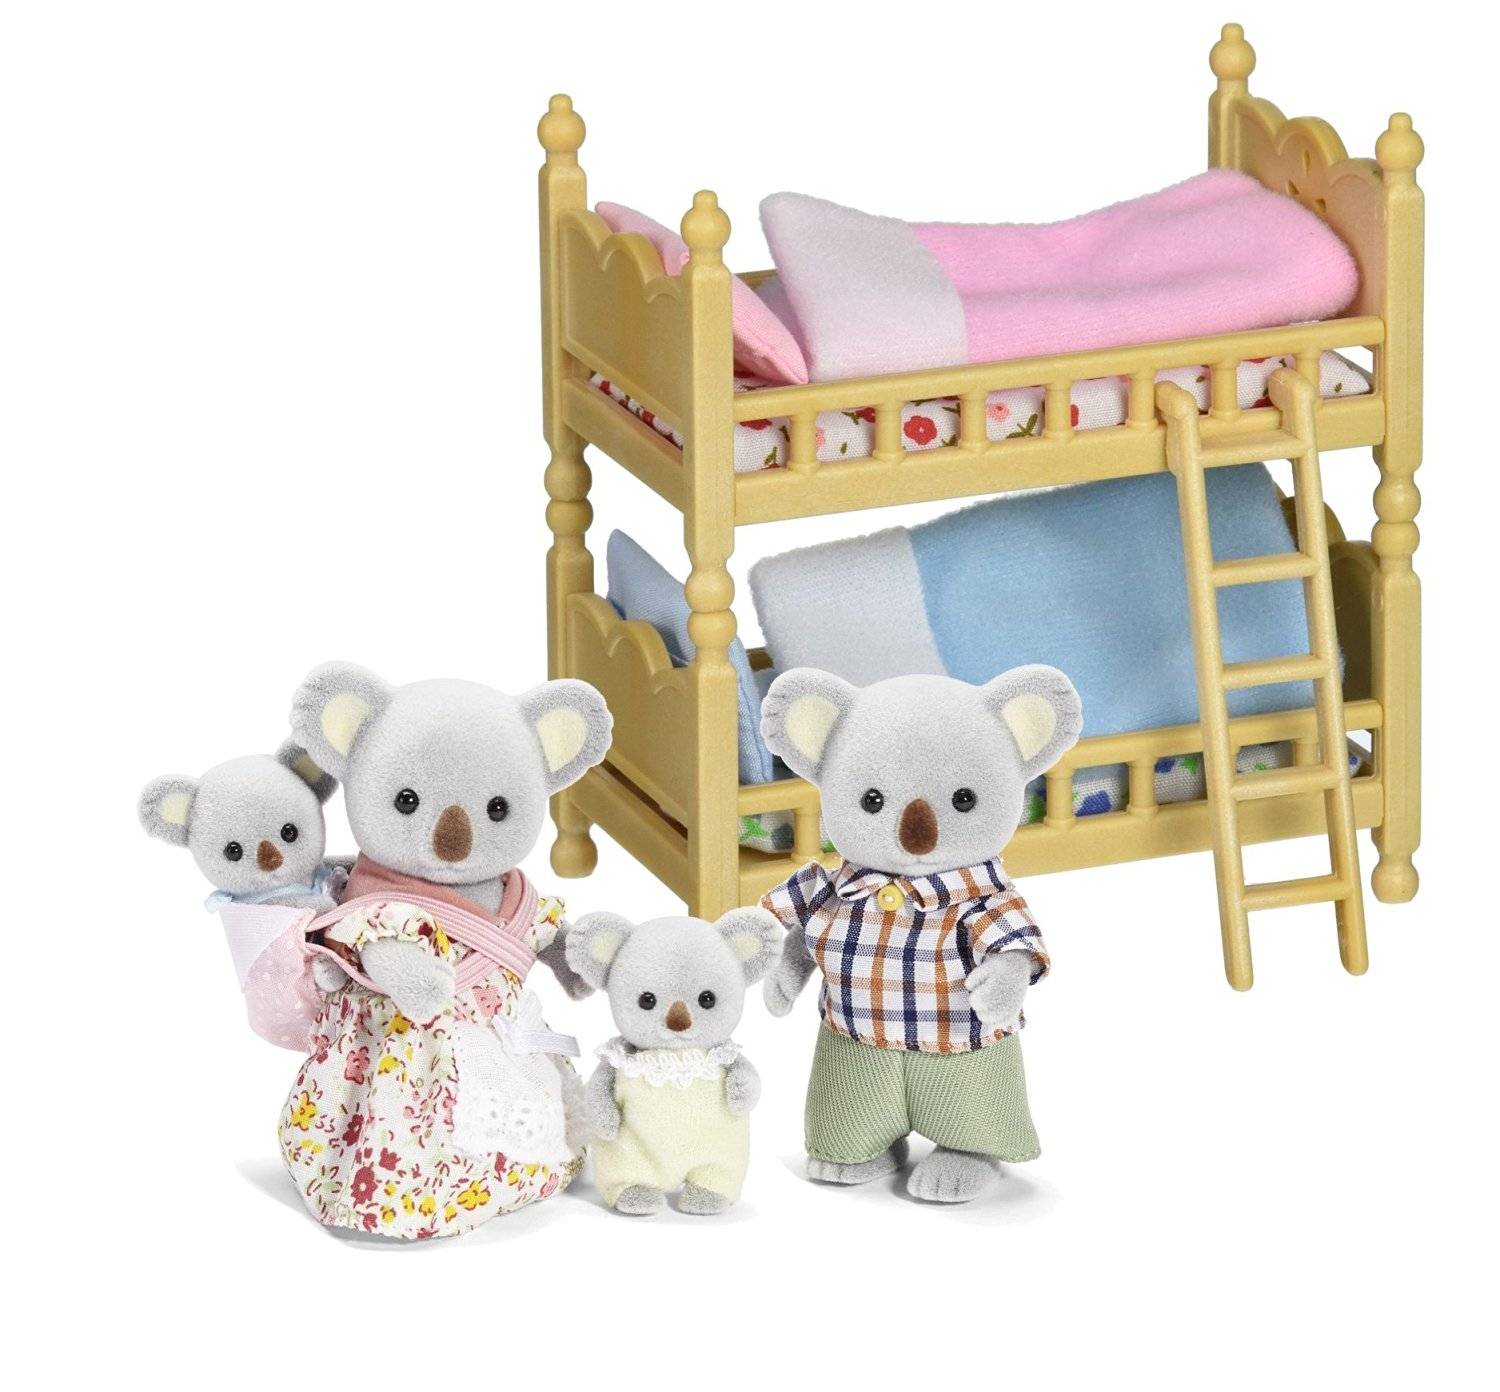 Buy Maven Gifts: Calico Critters of Cloverleaf Corners Bundle ...